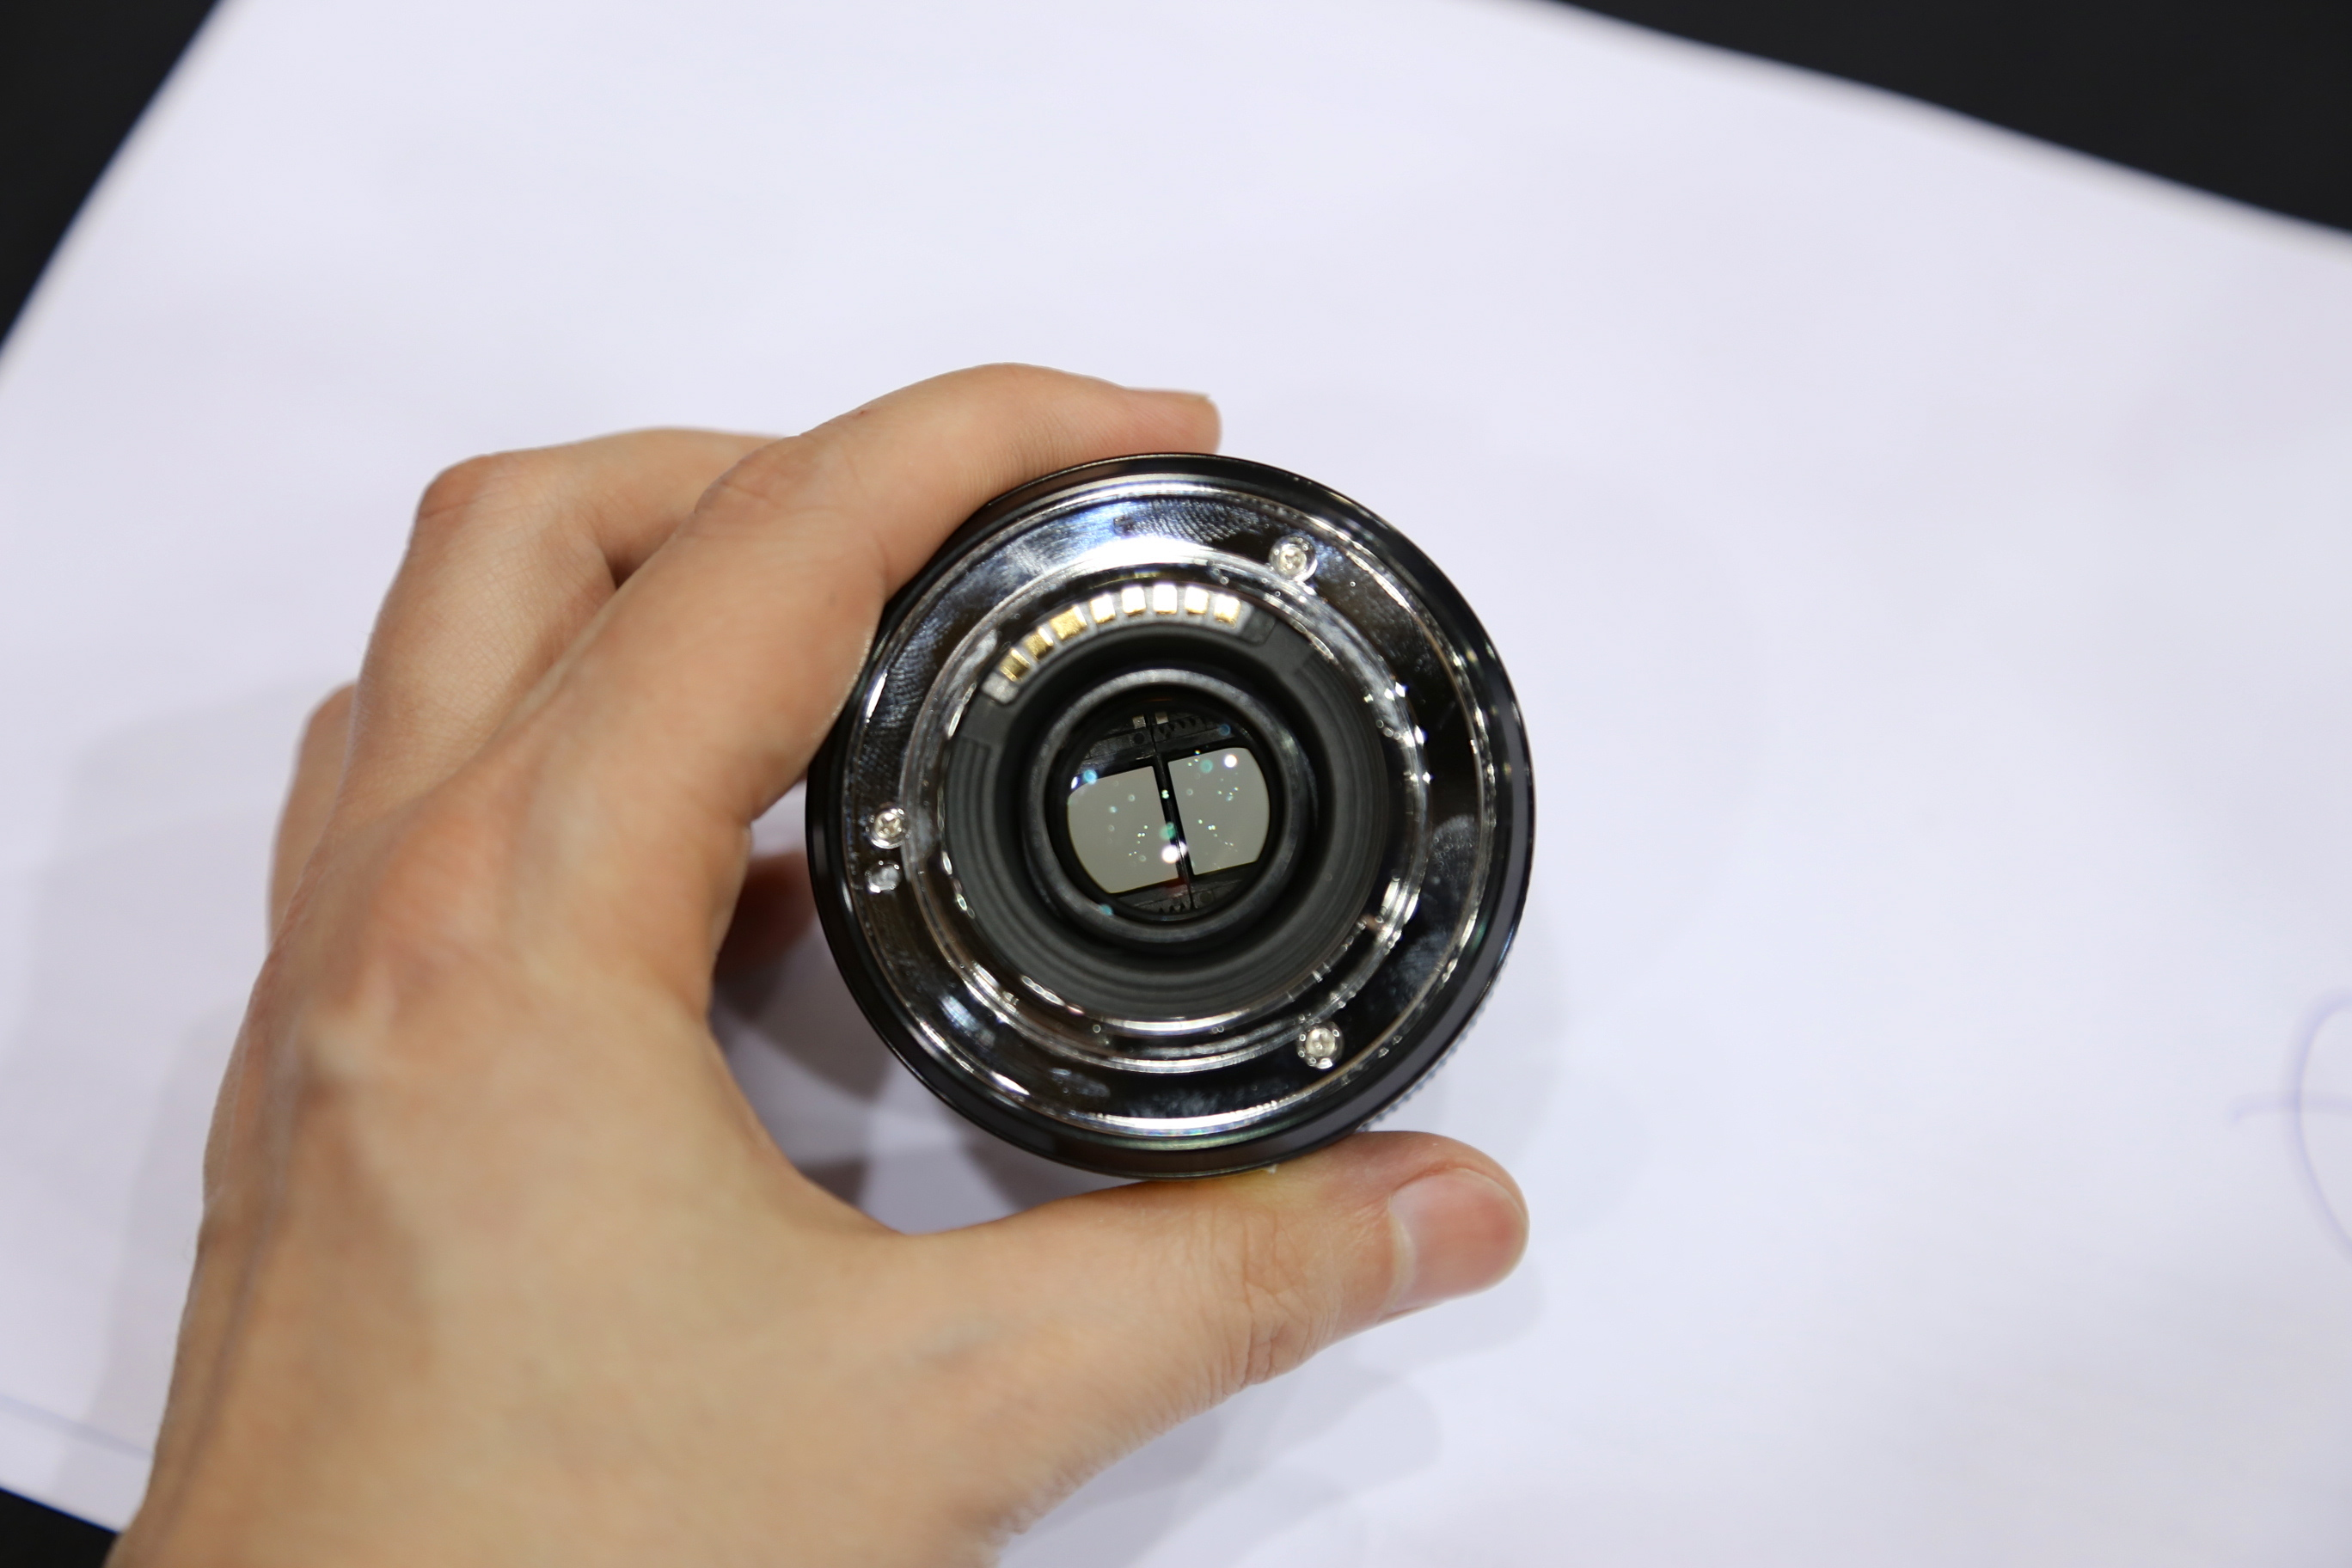 Look closely and you can see the dual-image element inside Samsung's 45mm f/1.8 2D/3D lens.